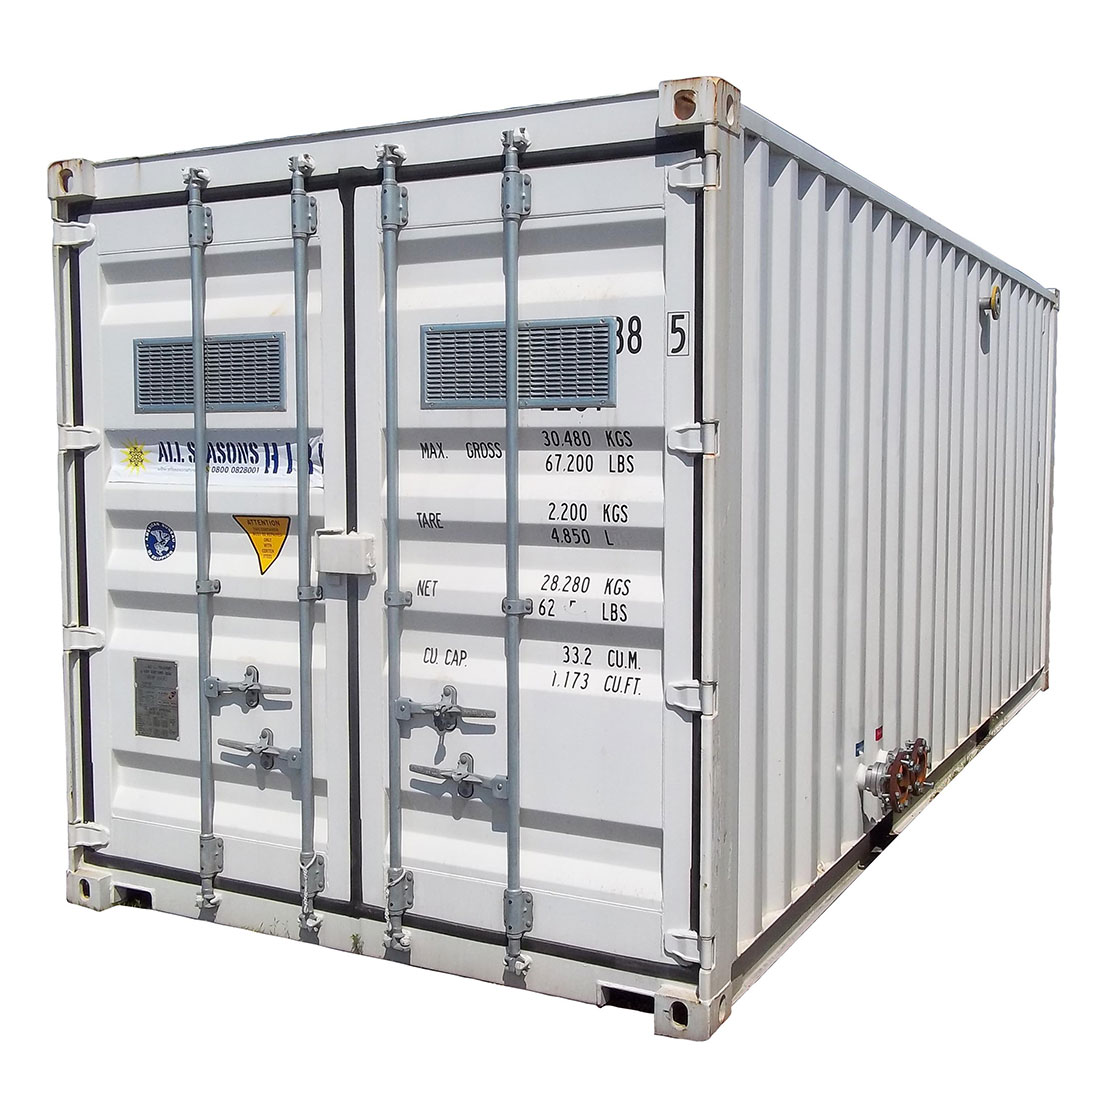 620kW Containerised Boiler